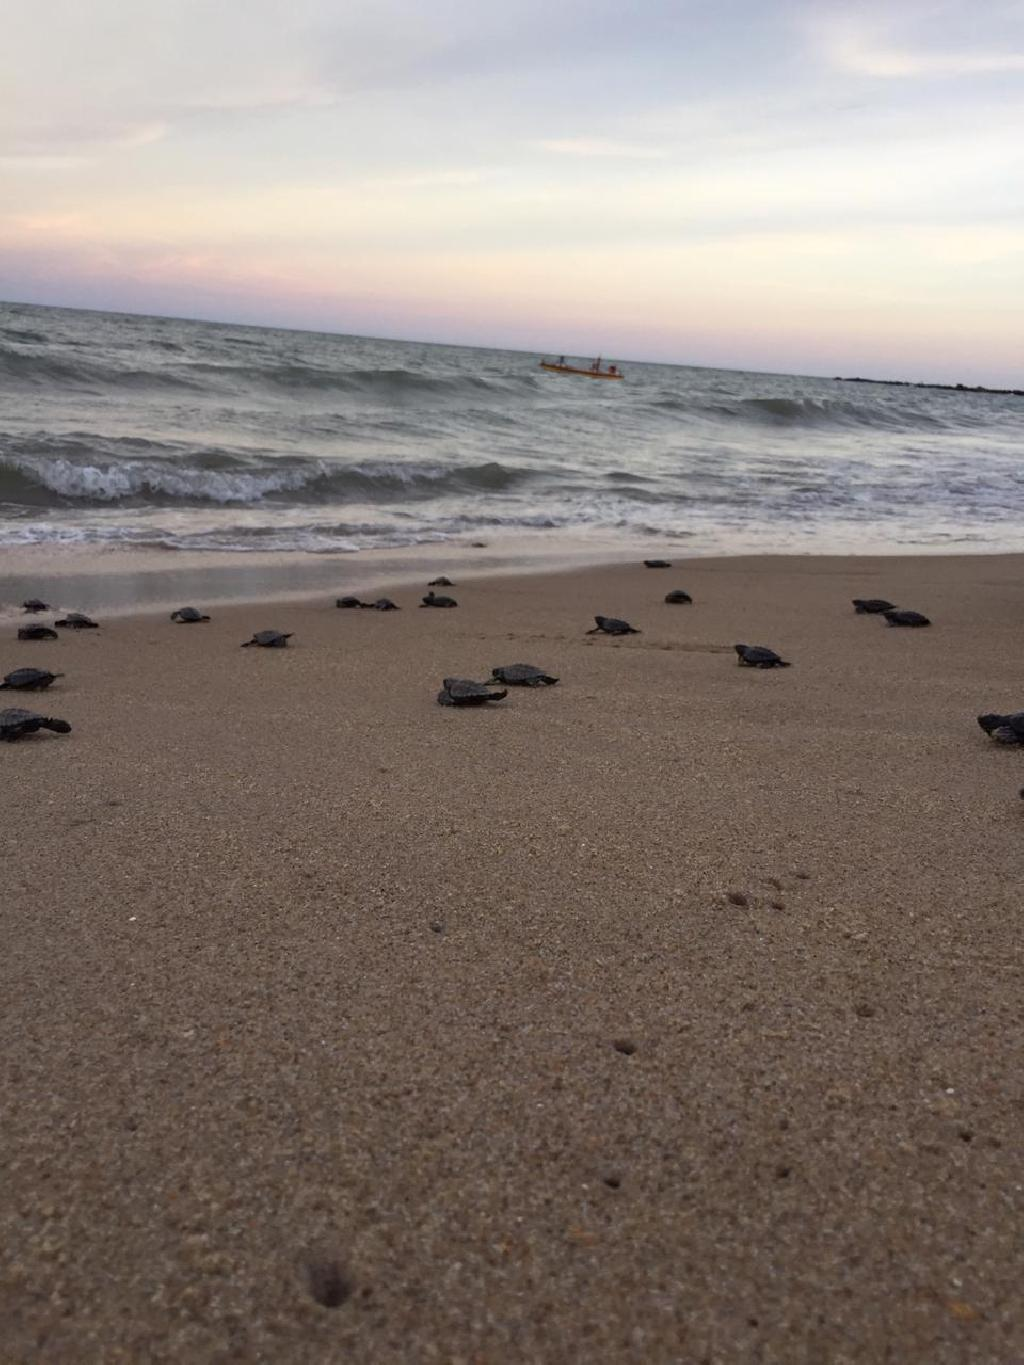 Endangered seat turtles making their way to the ocean